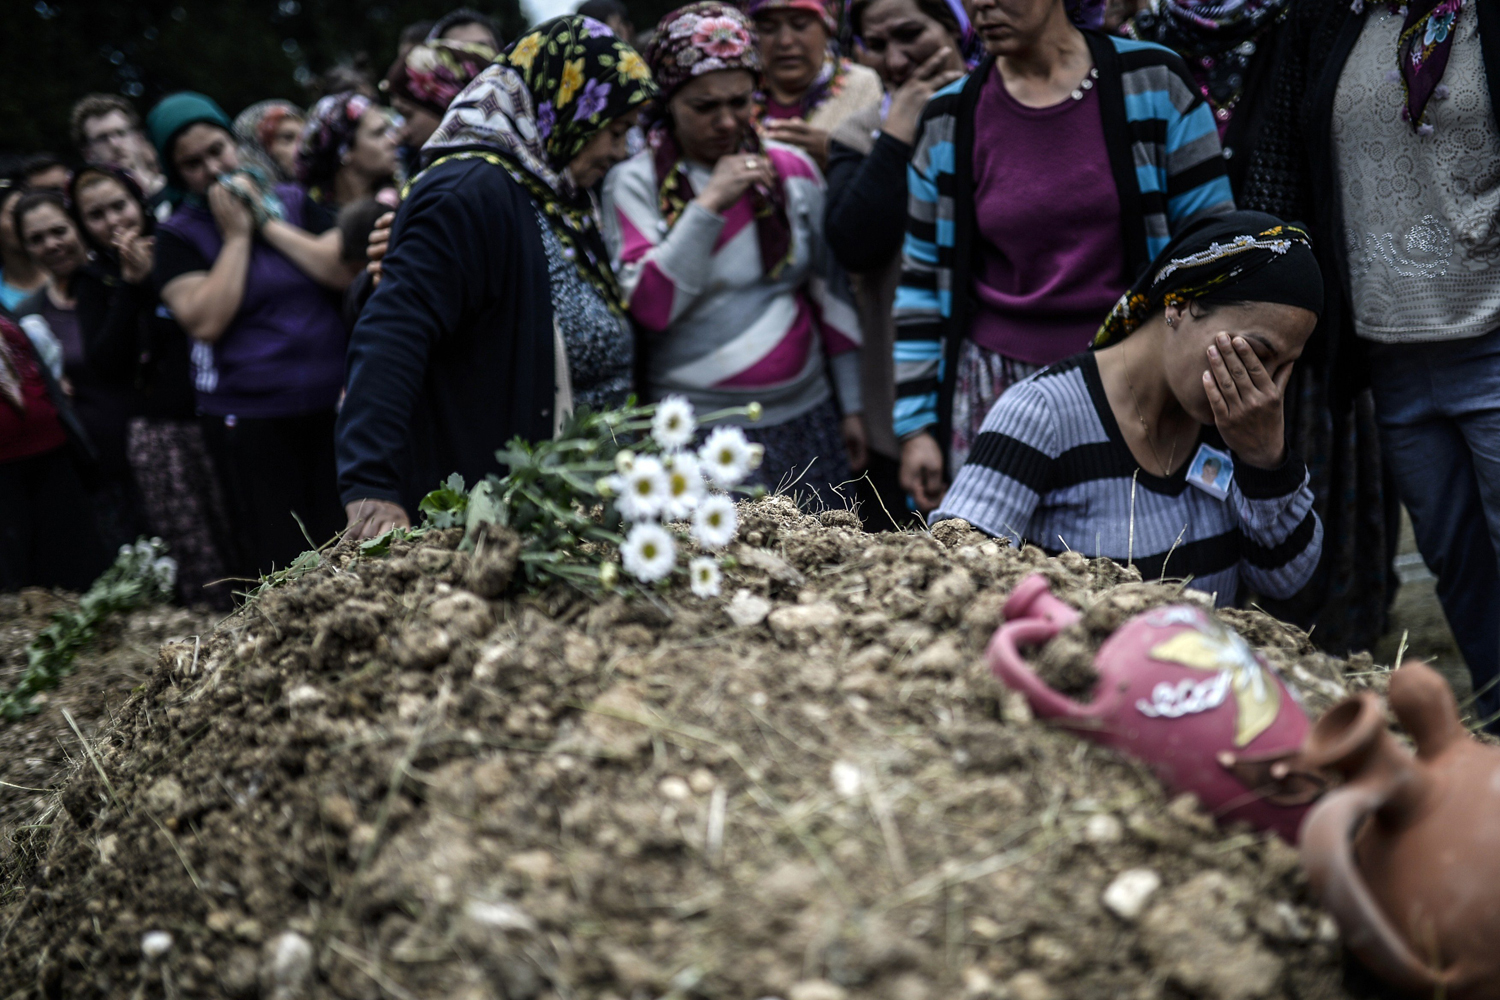 Duygu Colak, reacts as she sits in front of her husband Ugur's grave during a funeral ceremony in the western town of Soma in the Manisa province. Turkey, May 15, 2014.